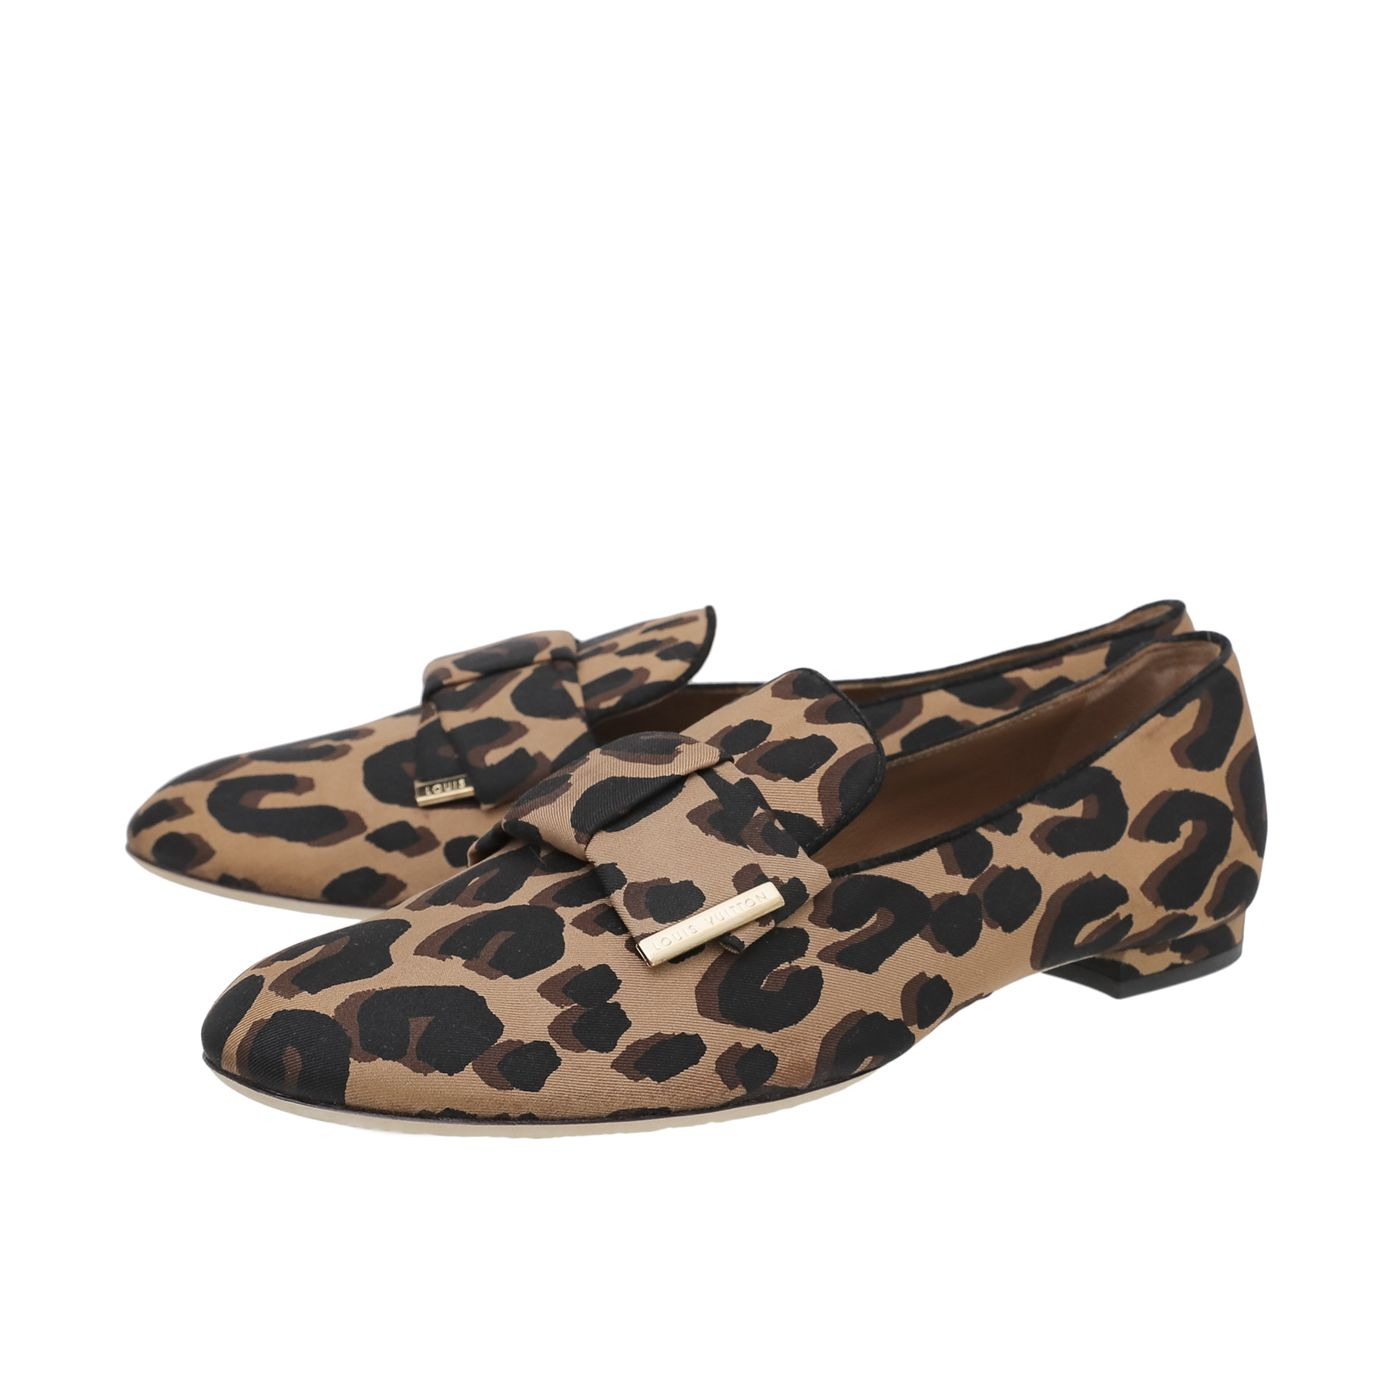 Louis Vuitton Leopard Print Stephen Sprouse Loafers 38.5